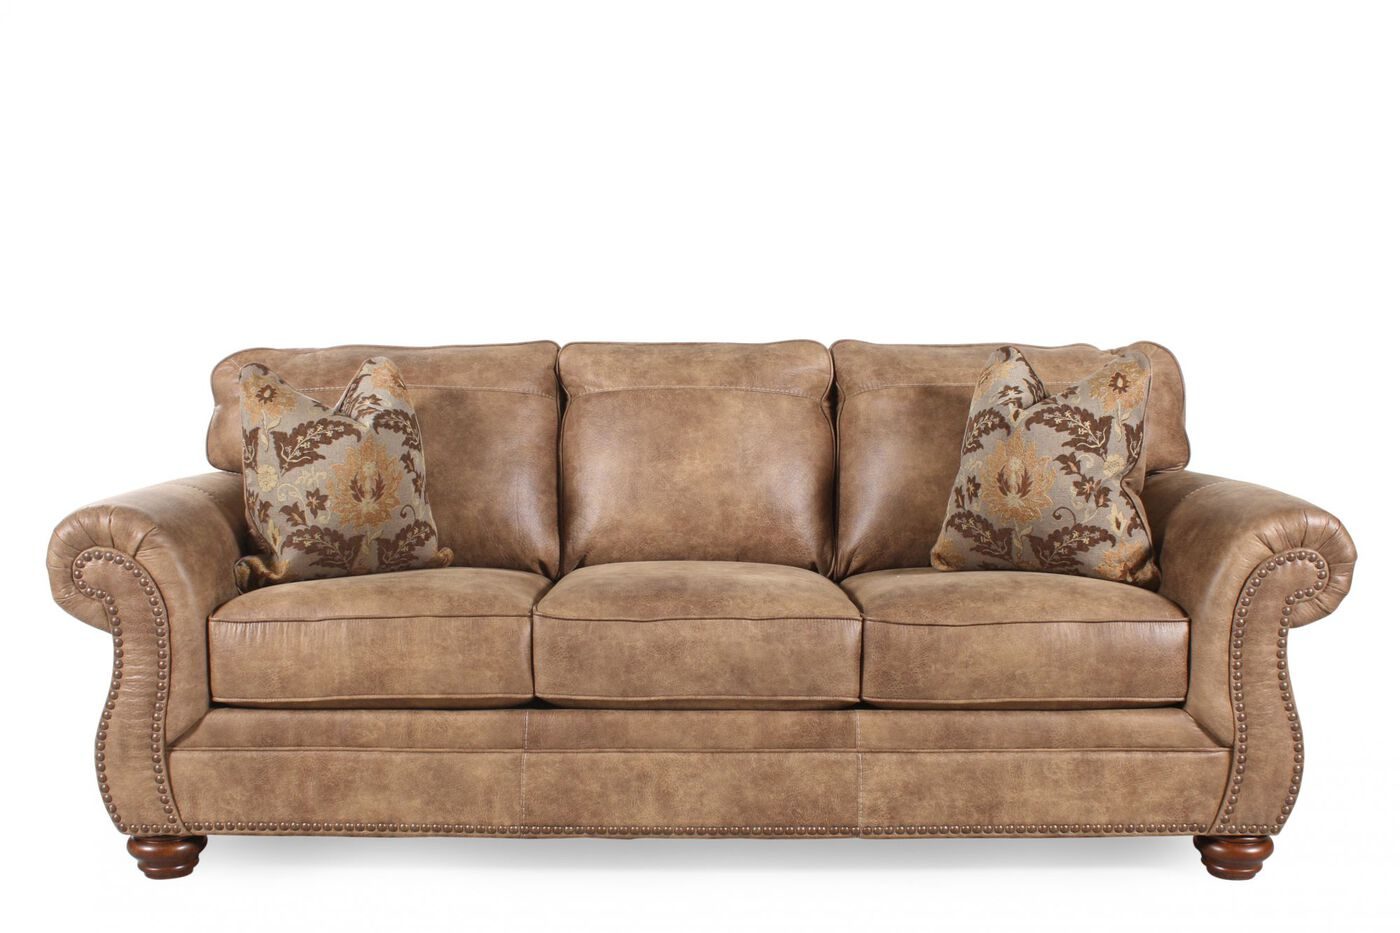 Ashley larkinhurst earth sofa mathis brothers furniture for Mathis brothers living room furniture sectional sofas